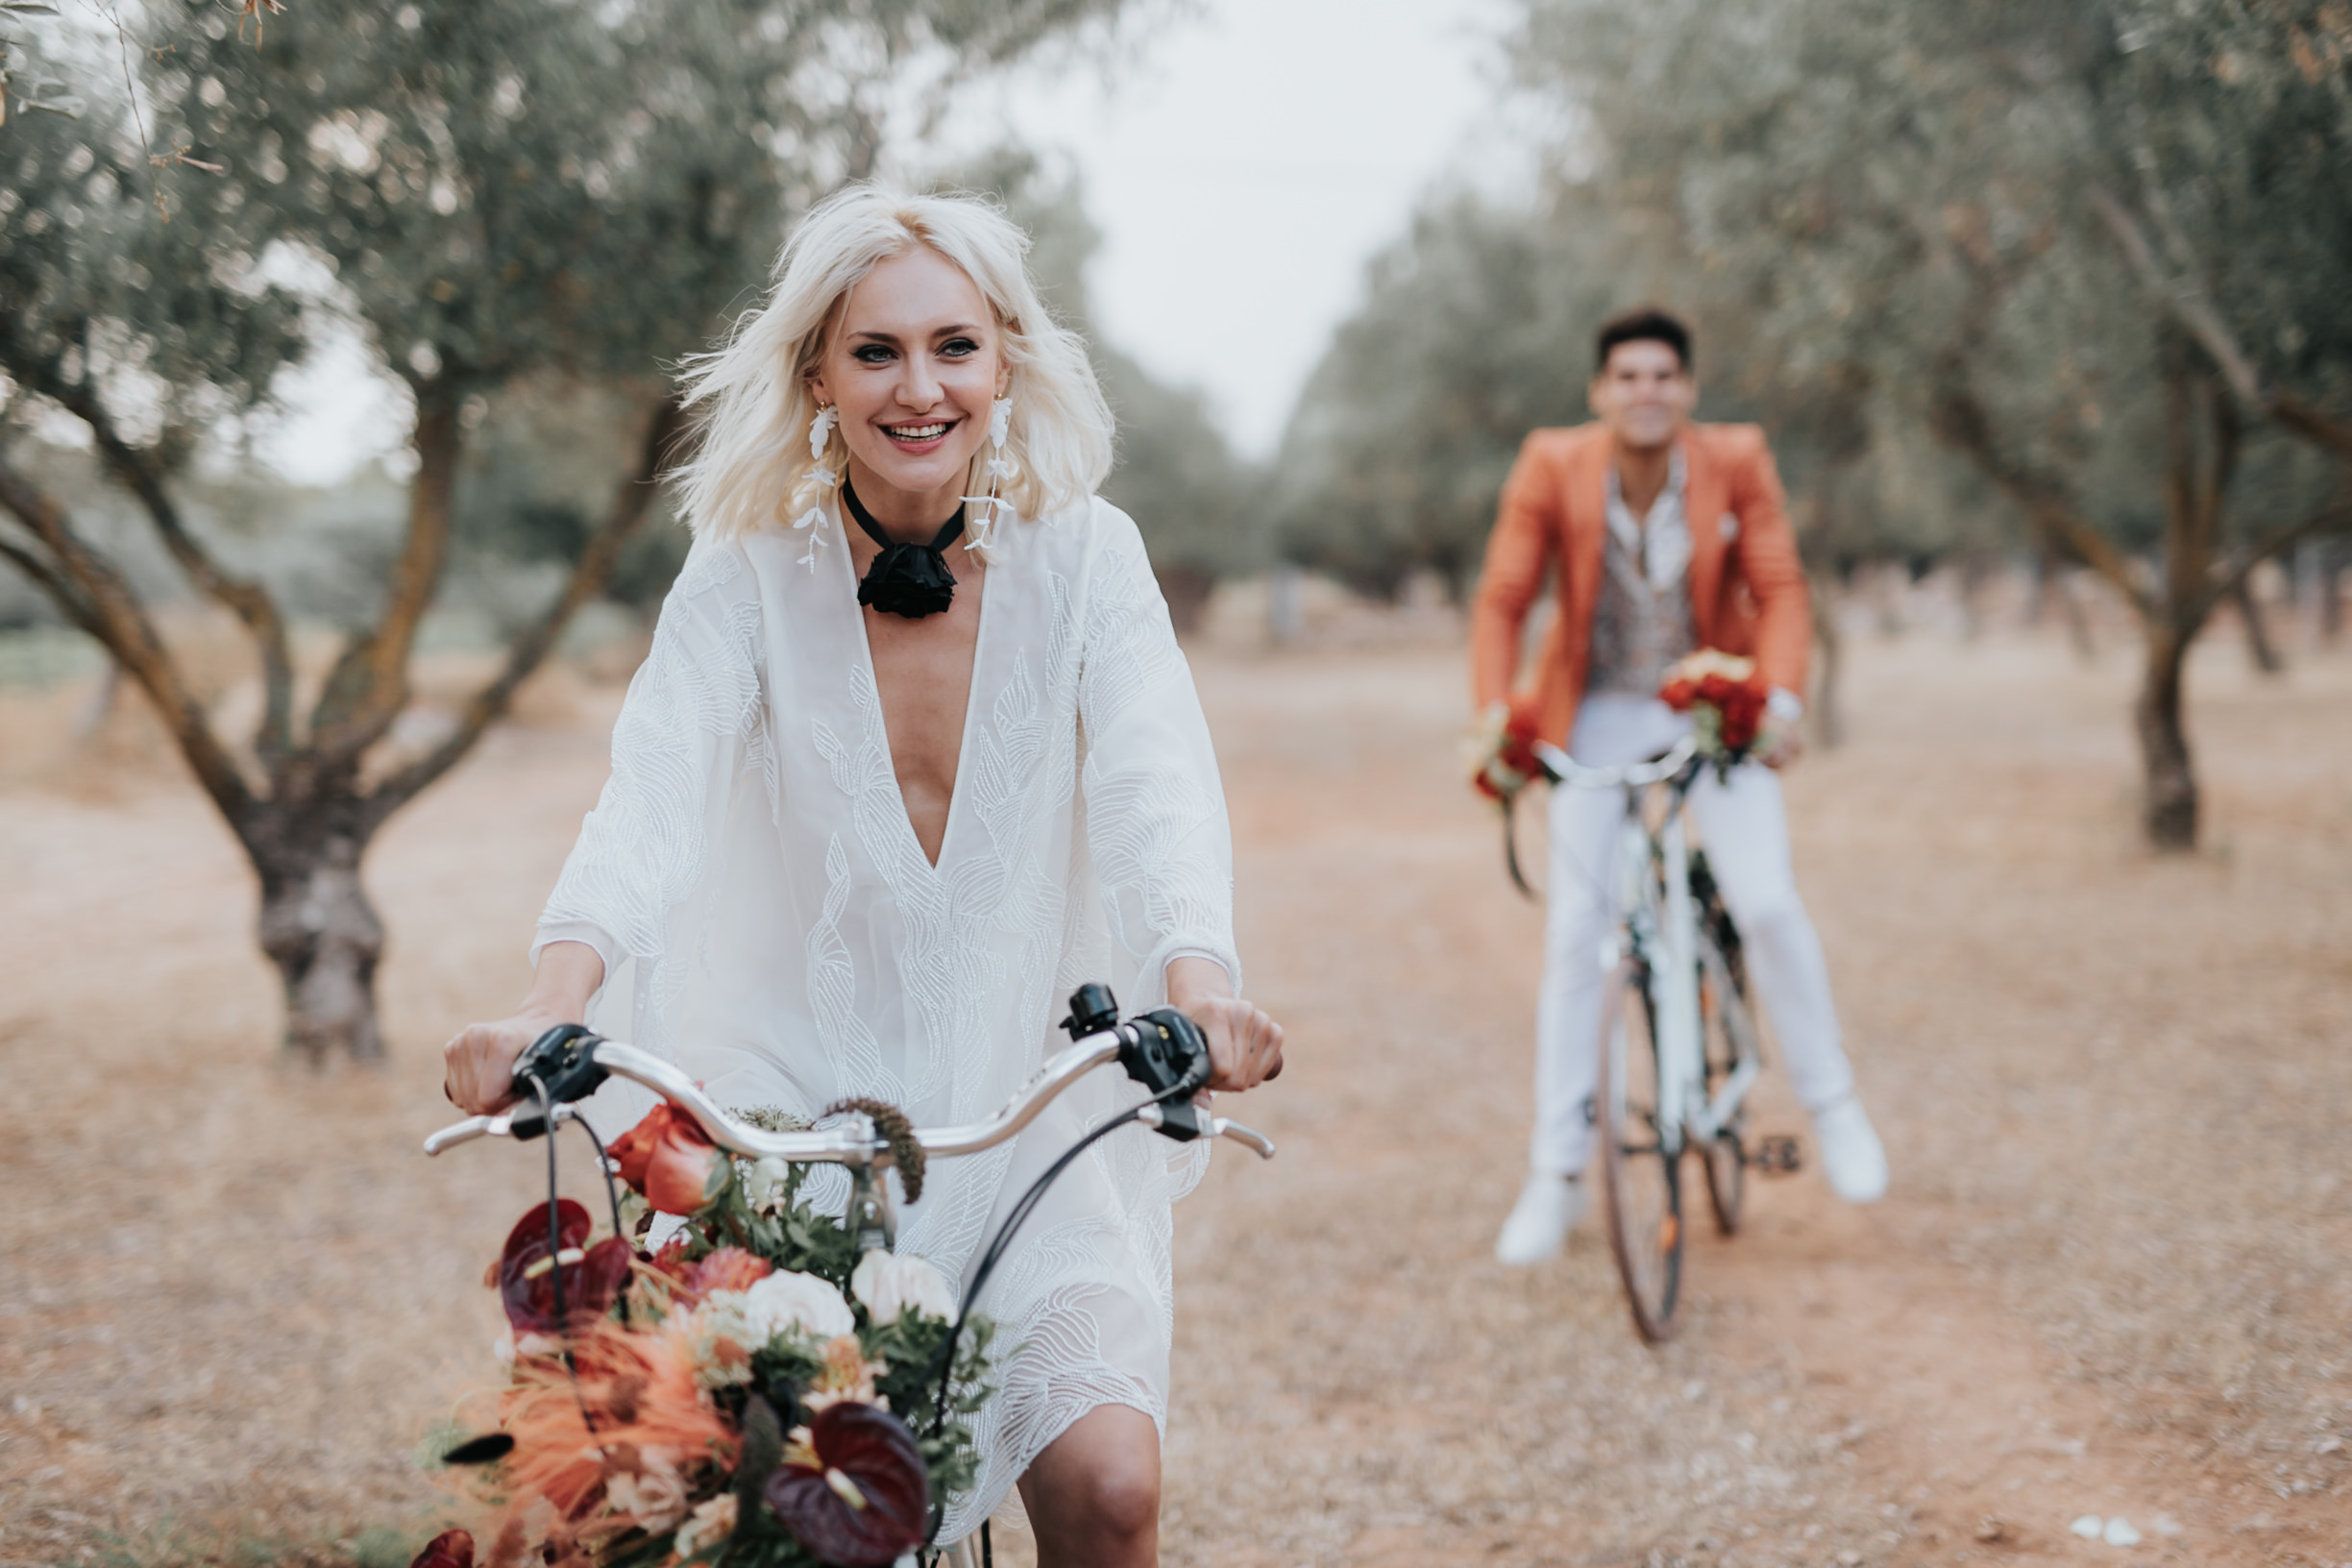 Bride and Groom driving decorated bicycles at Bohemian Rhapsody Bridal Inspiration for Alchimeia on Ellwed